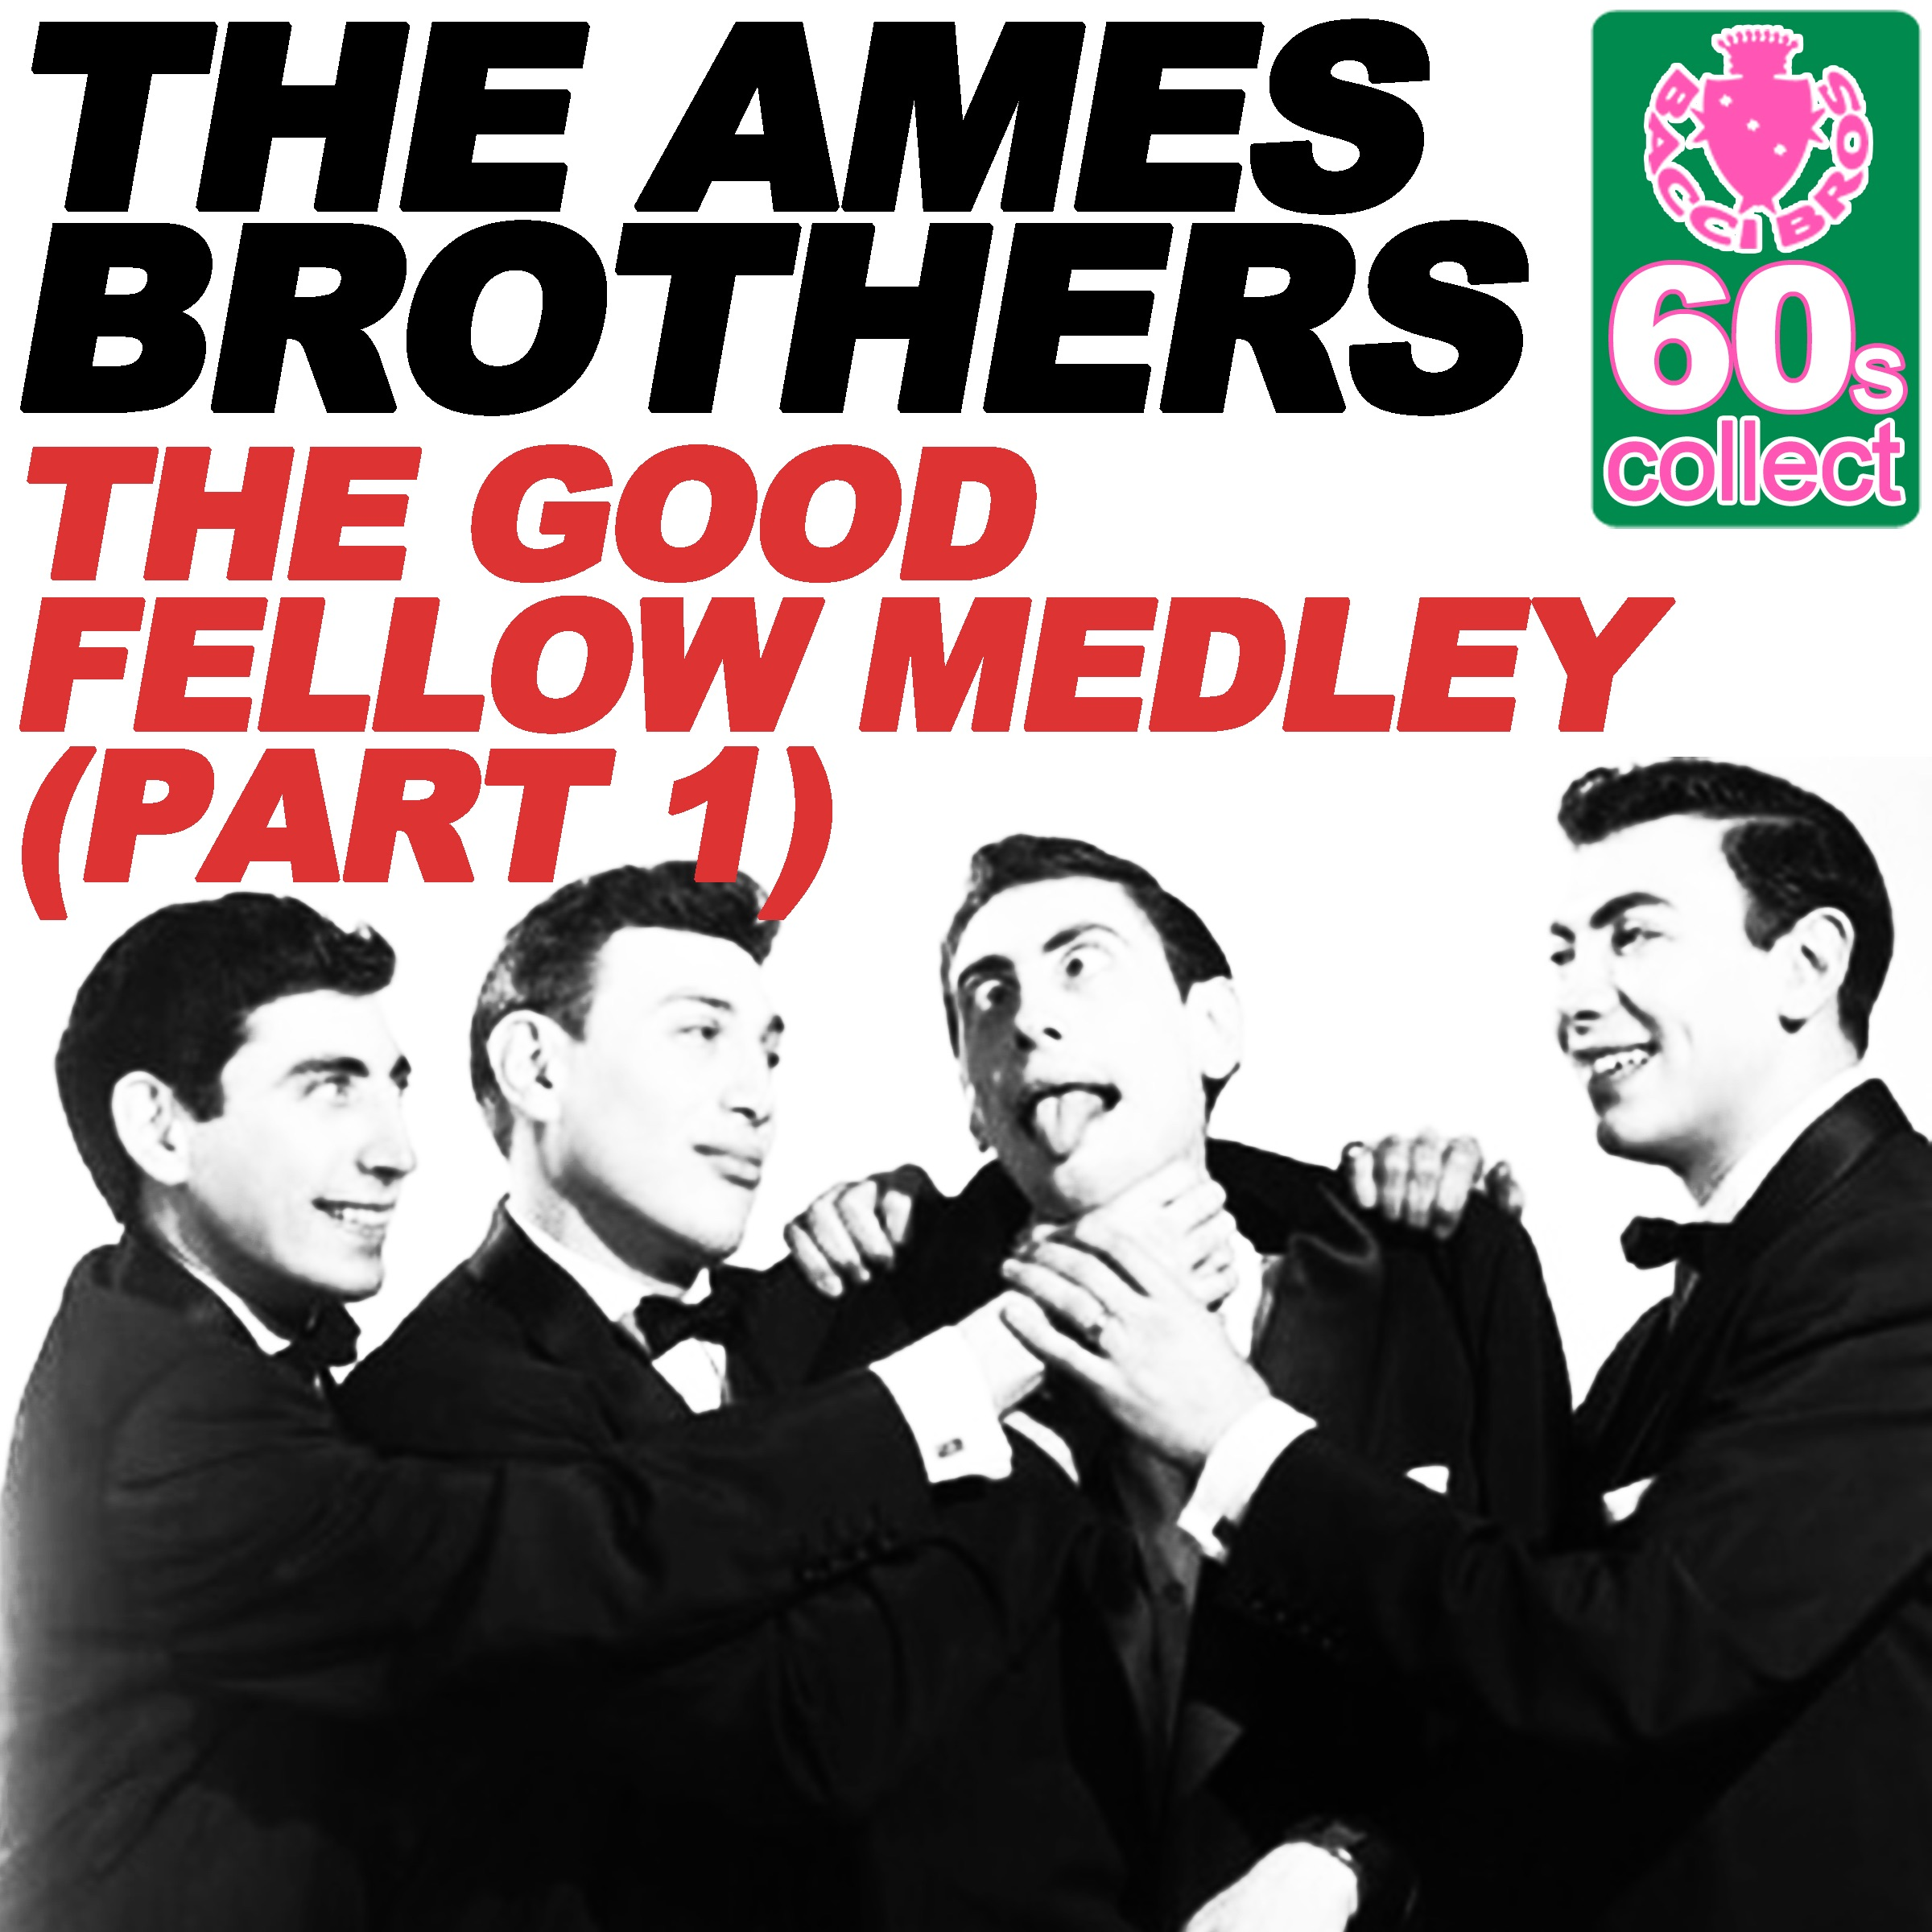 The Good Fellow Medley (Remastered) [Part 1] - Single